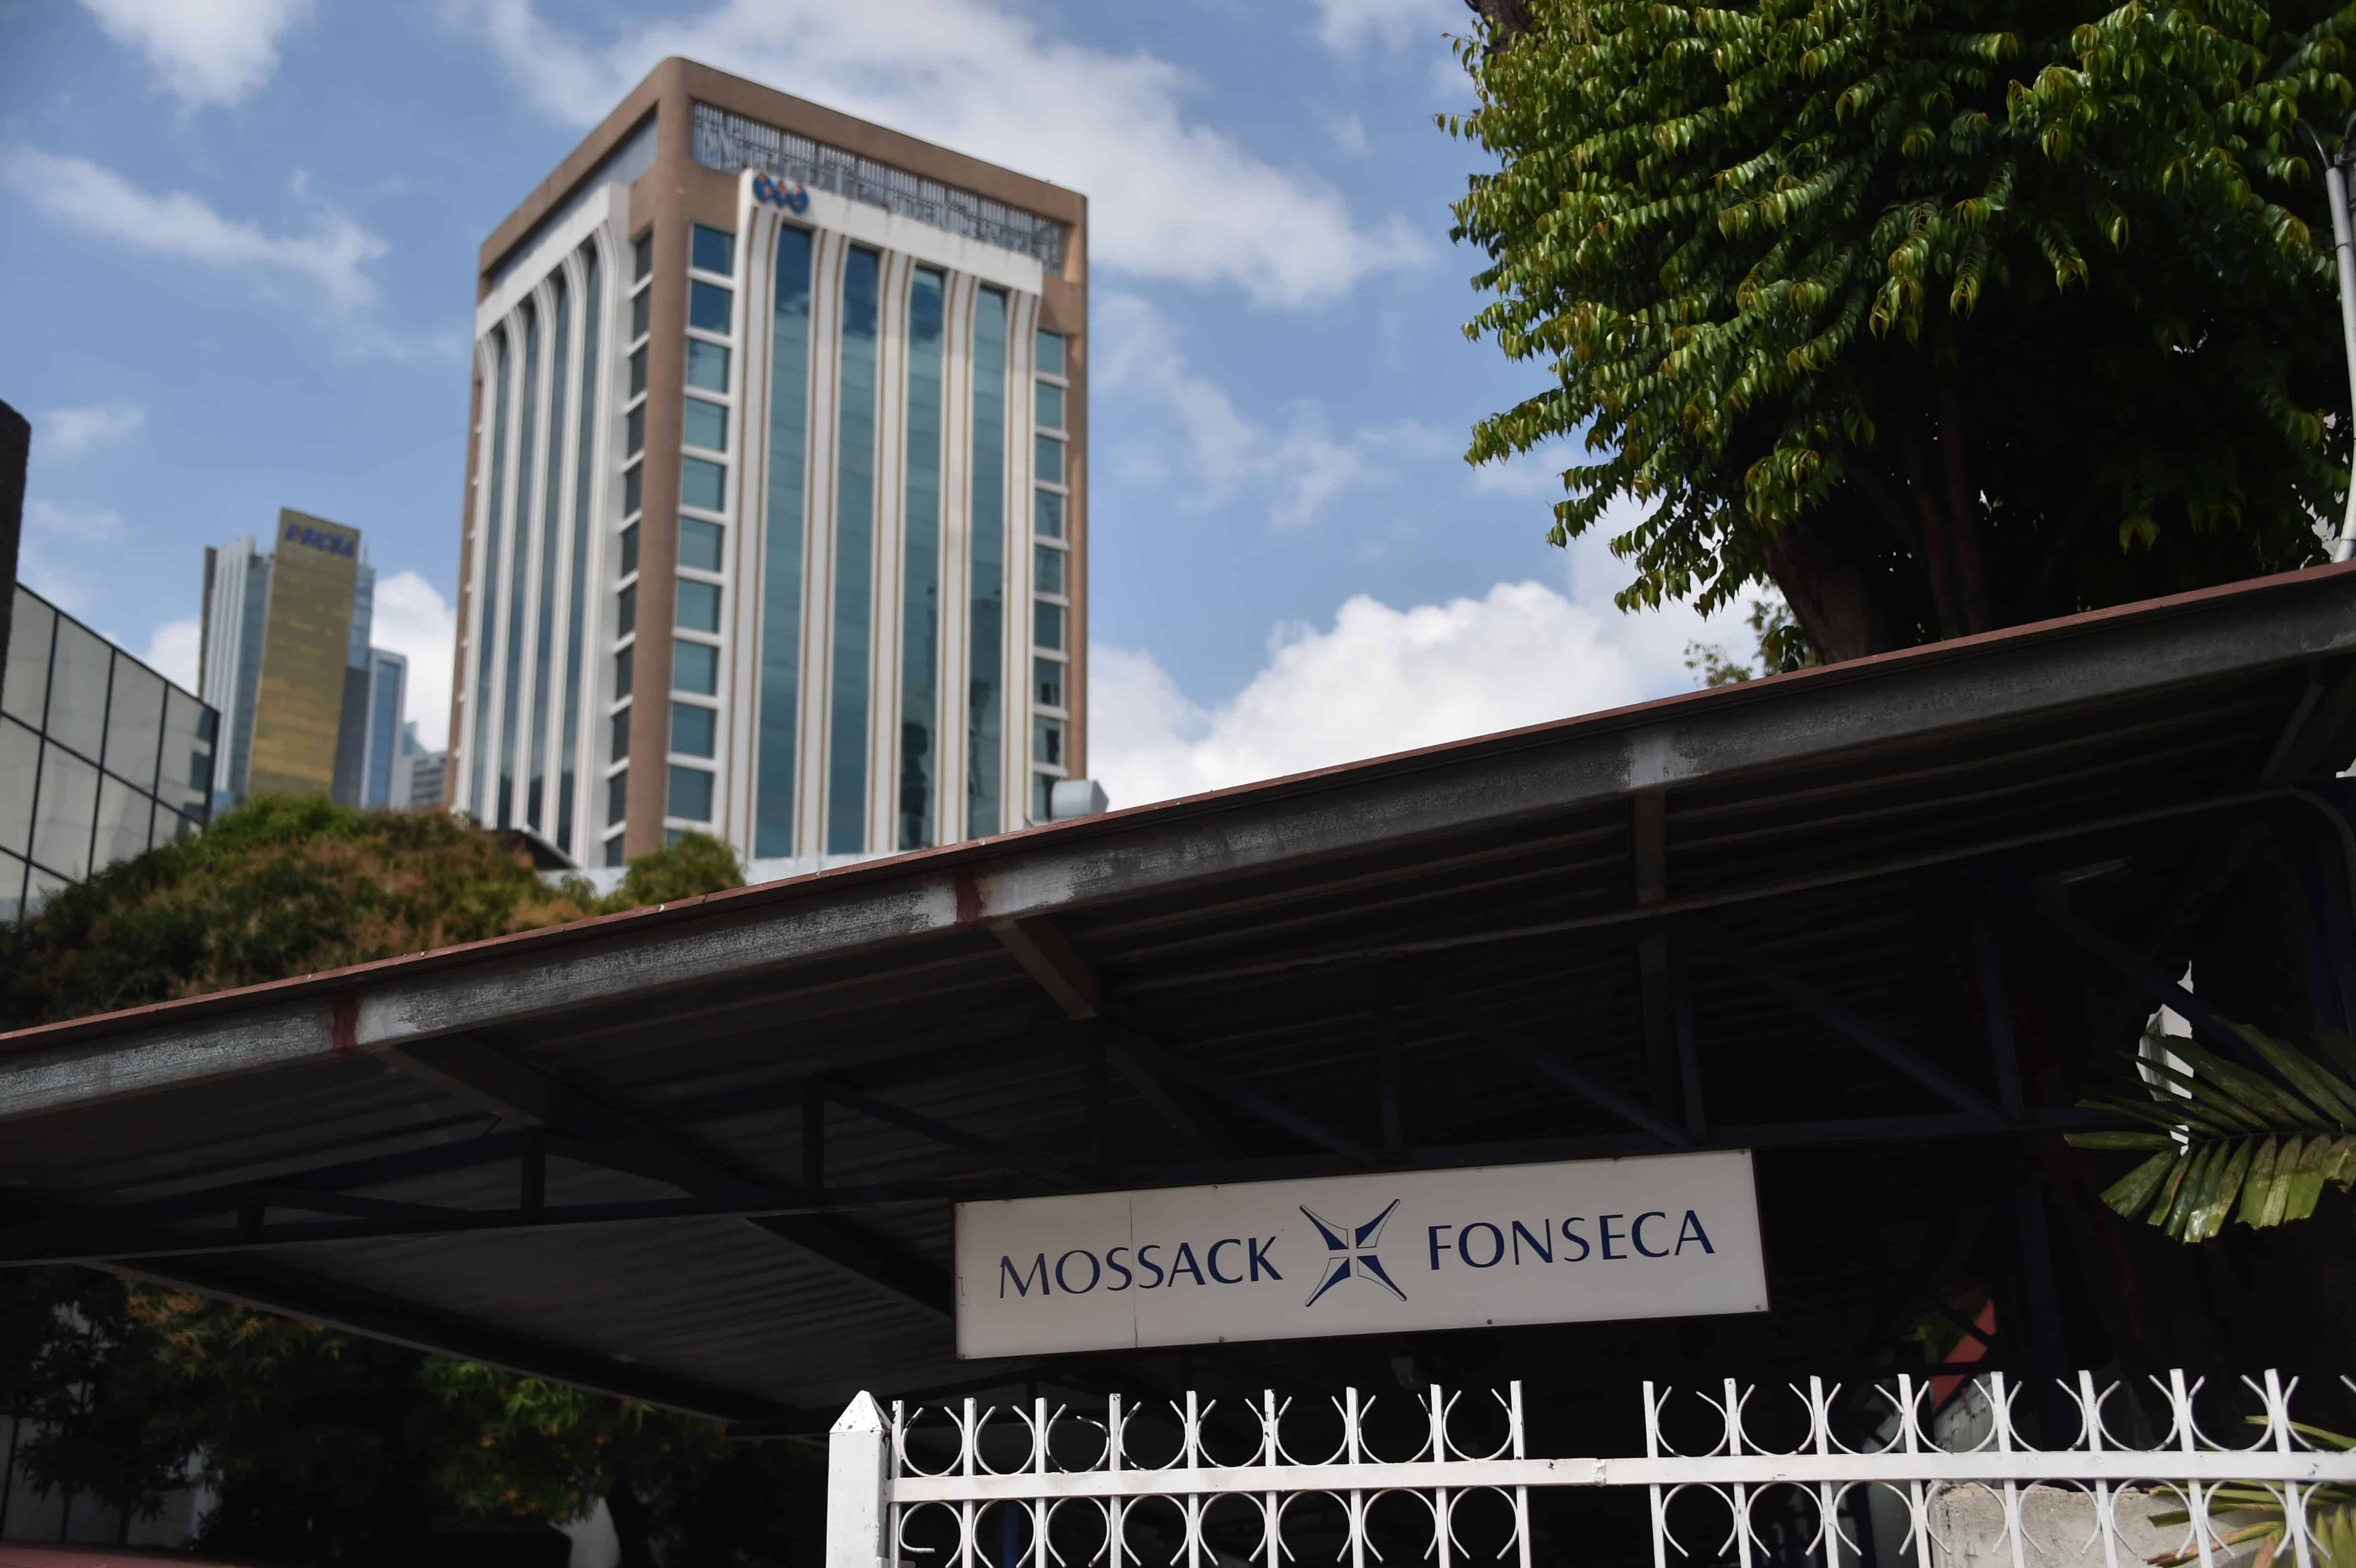 Mossack Fonseca, Panama Papers